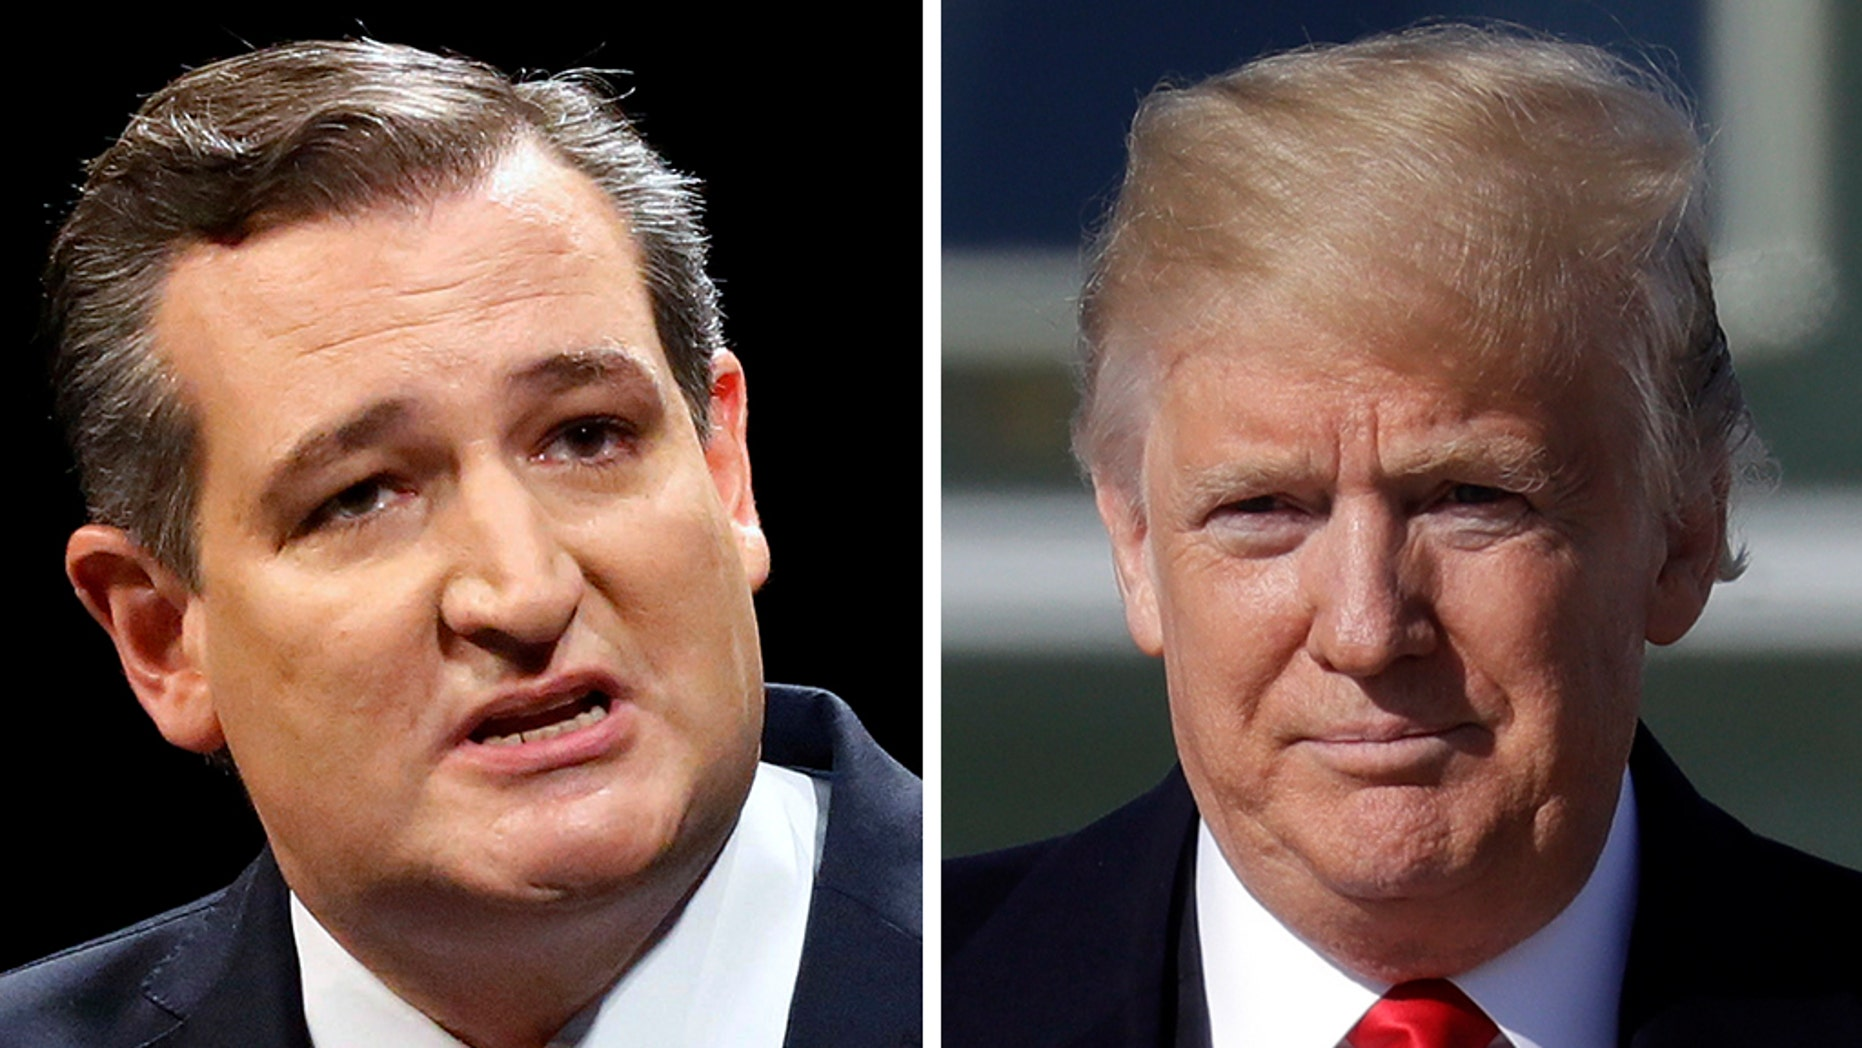 Sen. Ted Cruz says his feud with President Trump is long gone.